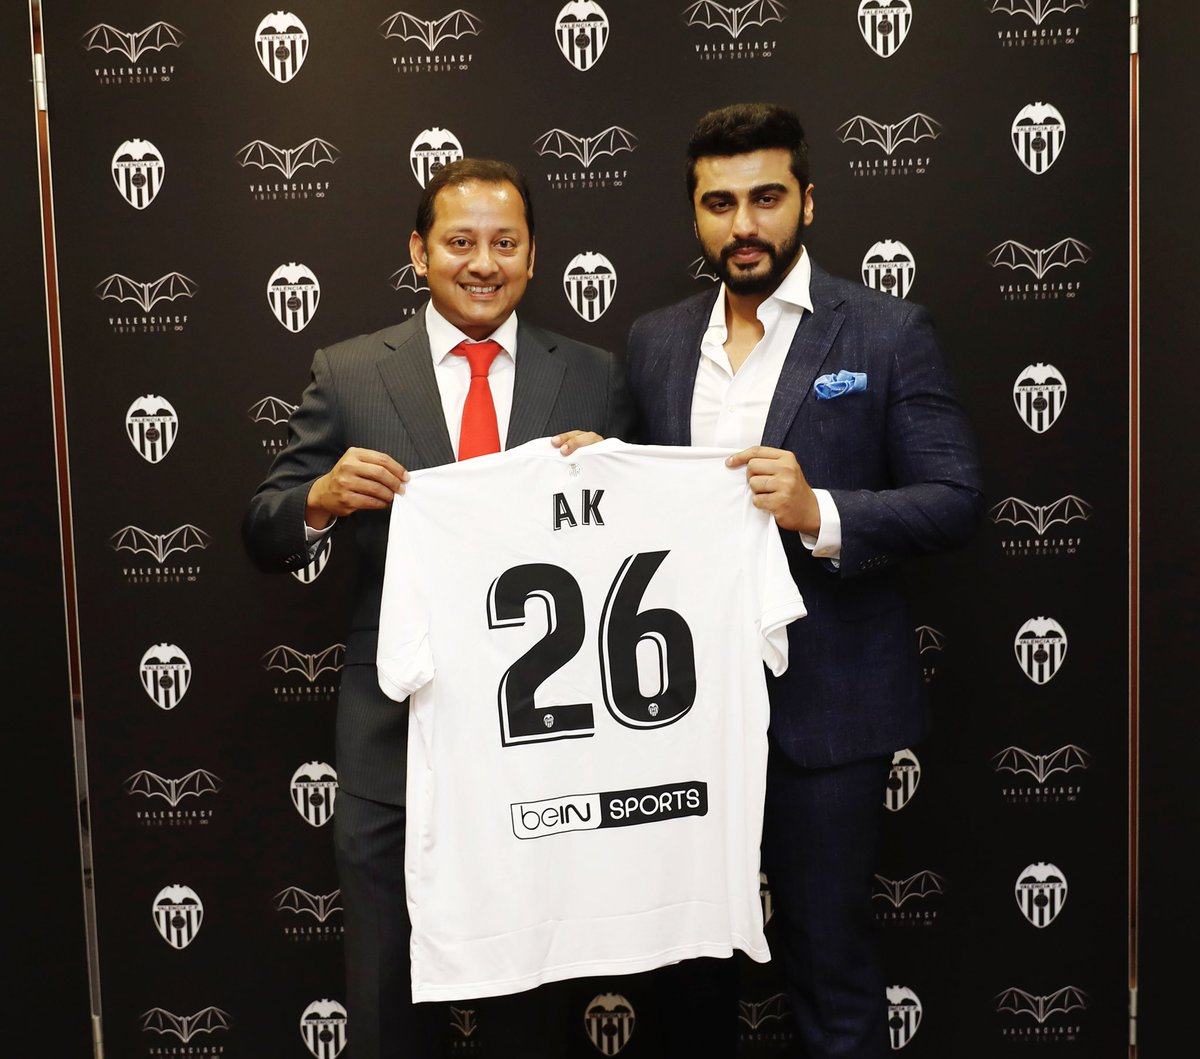 Thank you @valenciacf_en for the great hospitality, and @anilmurthy1903 for the personalized Valencia jersey... All the best to @Geo_Kondogbia, @Cheryshev & the whole team for the season!!! @LaLigaEN #ItsLaLiga #LaLigaSantanderIsBack